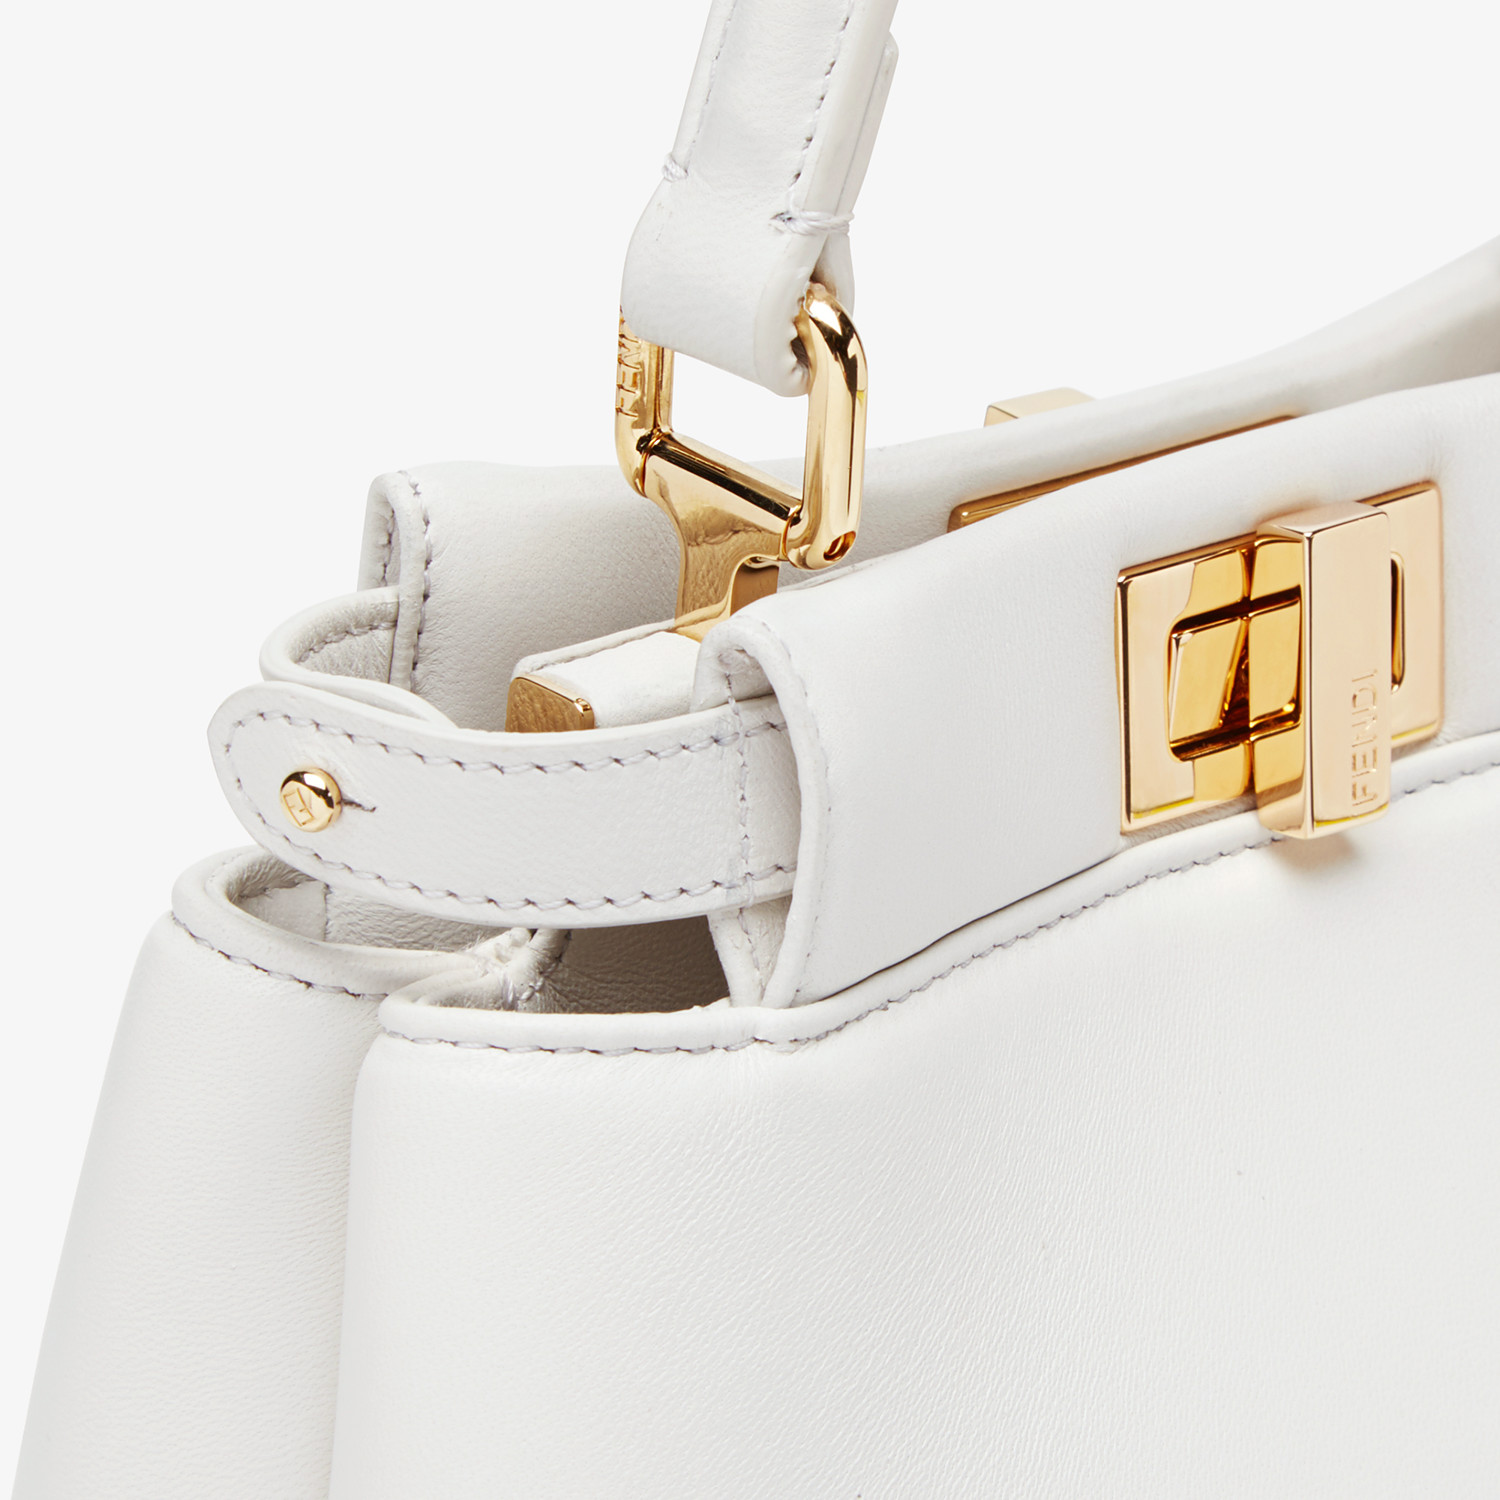 FENDI PEEKABOO ICONIC XS - White nappa leather bag - view 6 detail